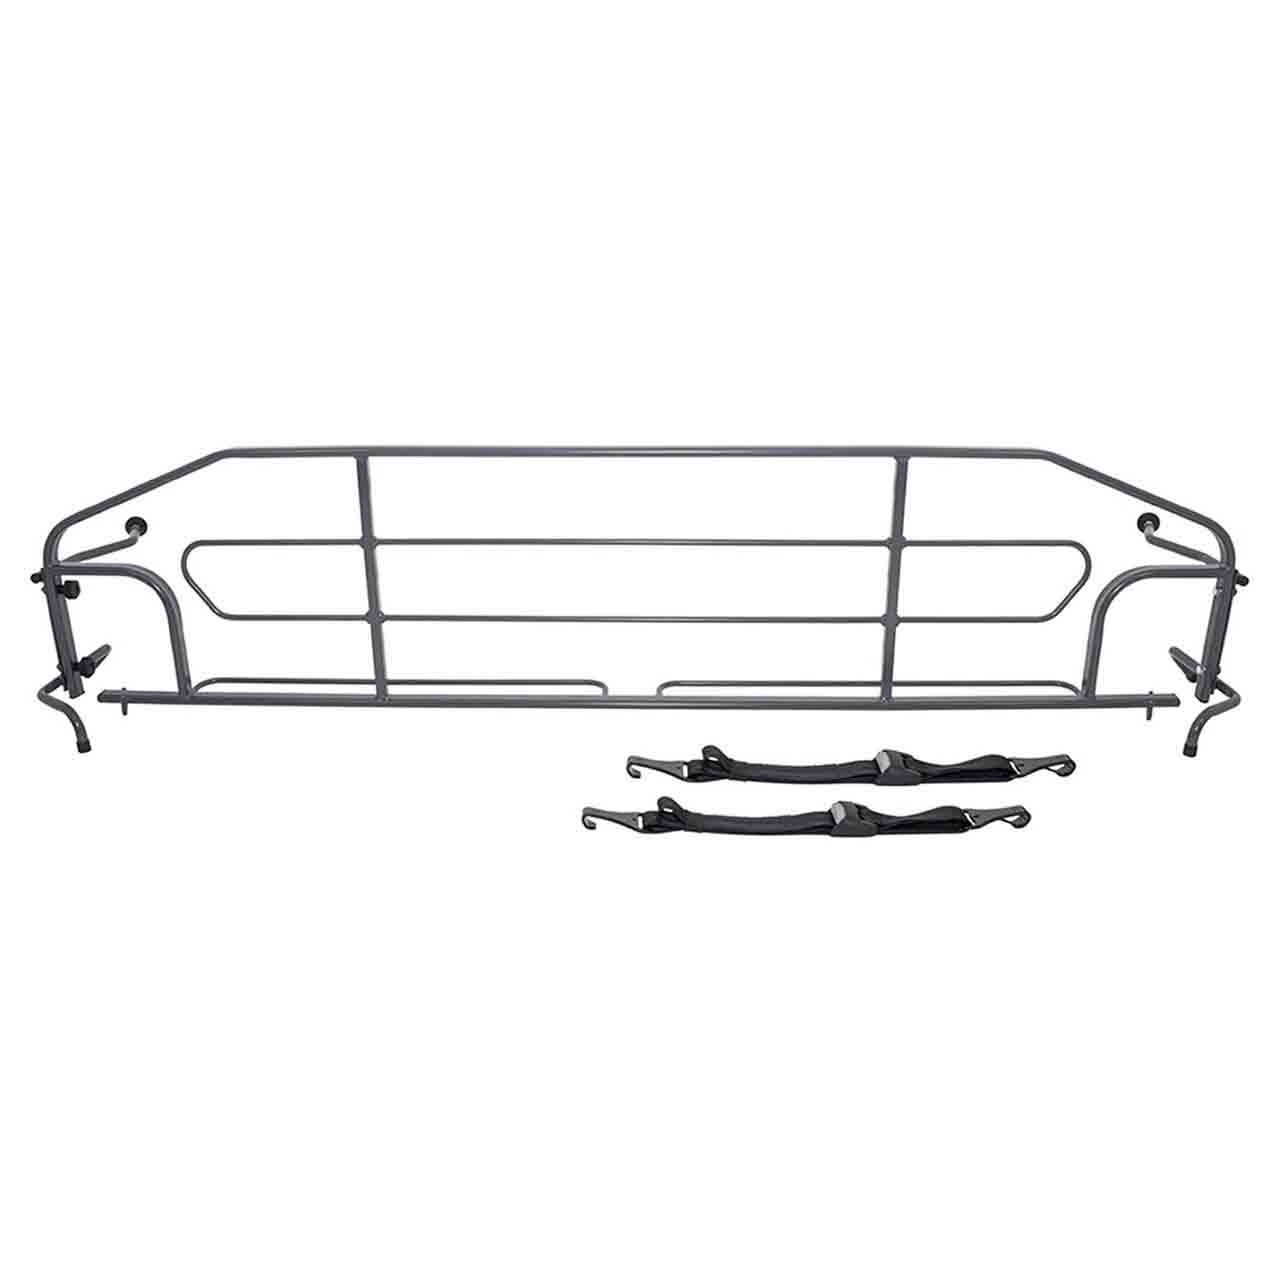 Guard Cani Range Rover Sport Range Rover Sport Land Rover GR2-07357